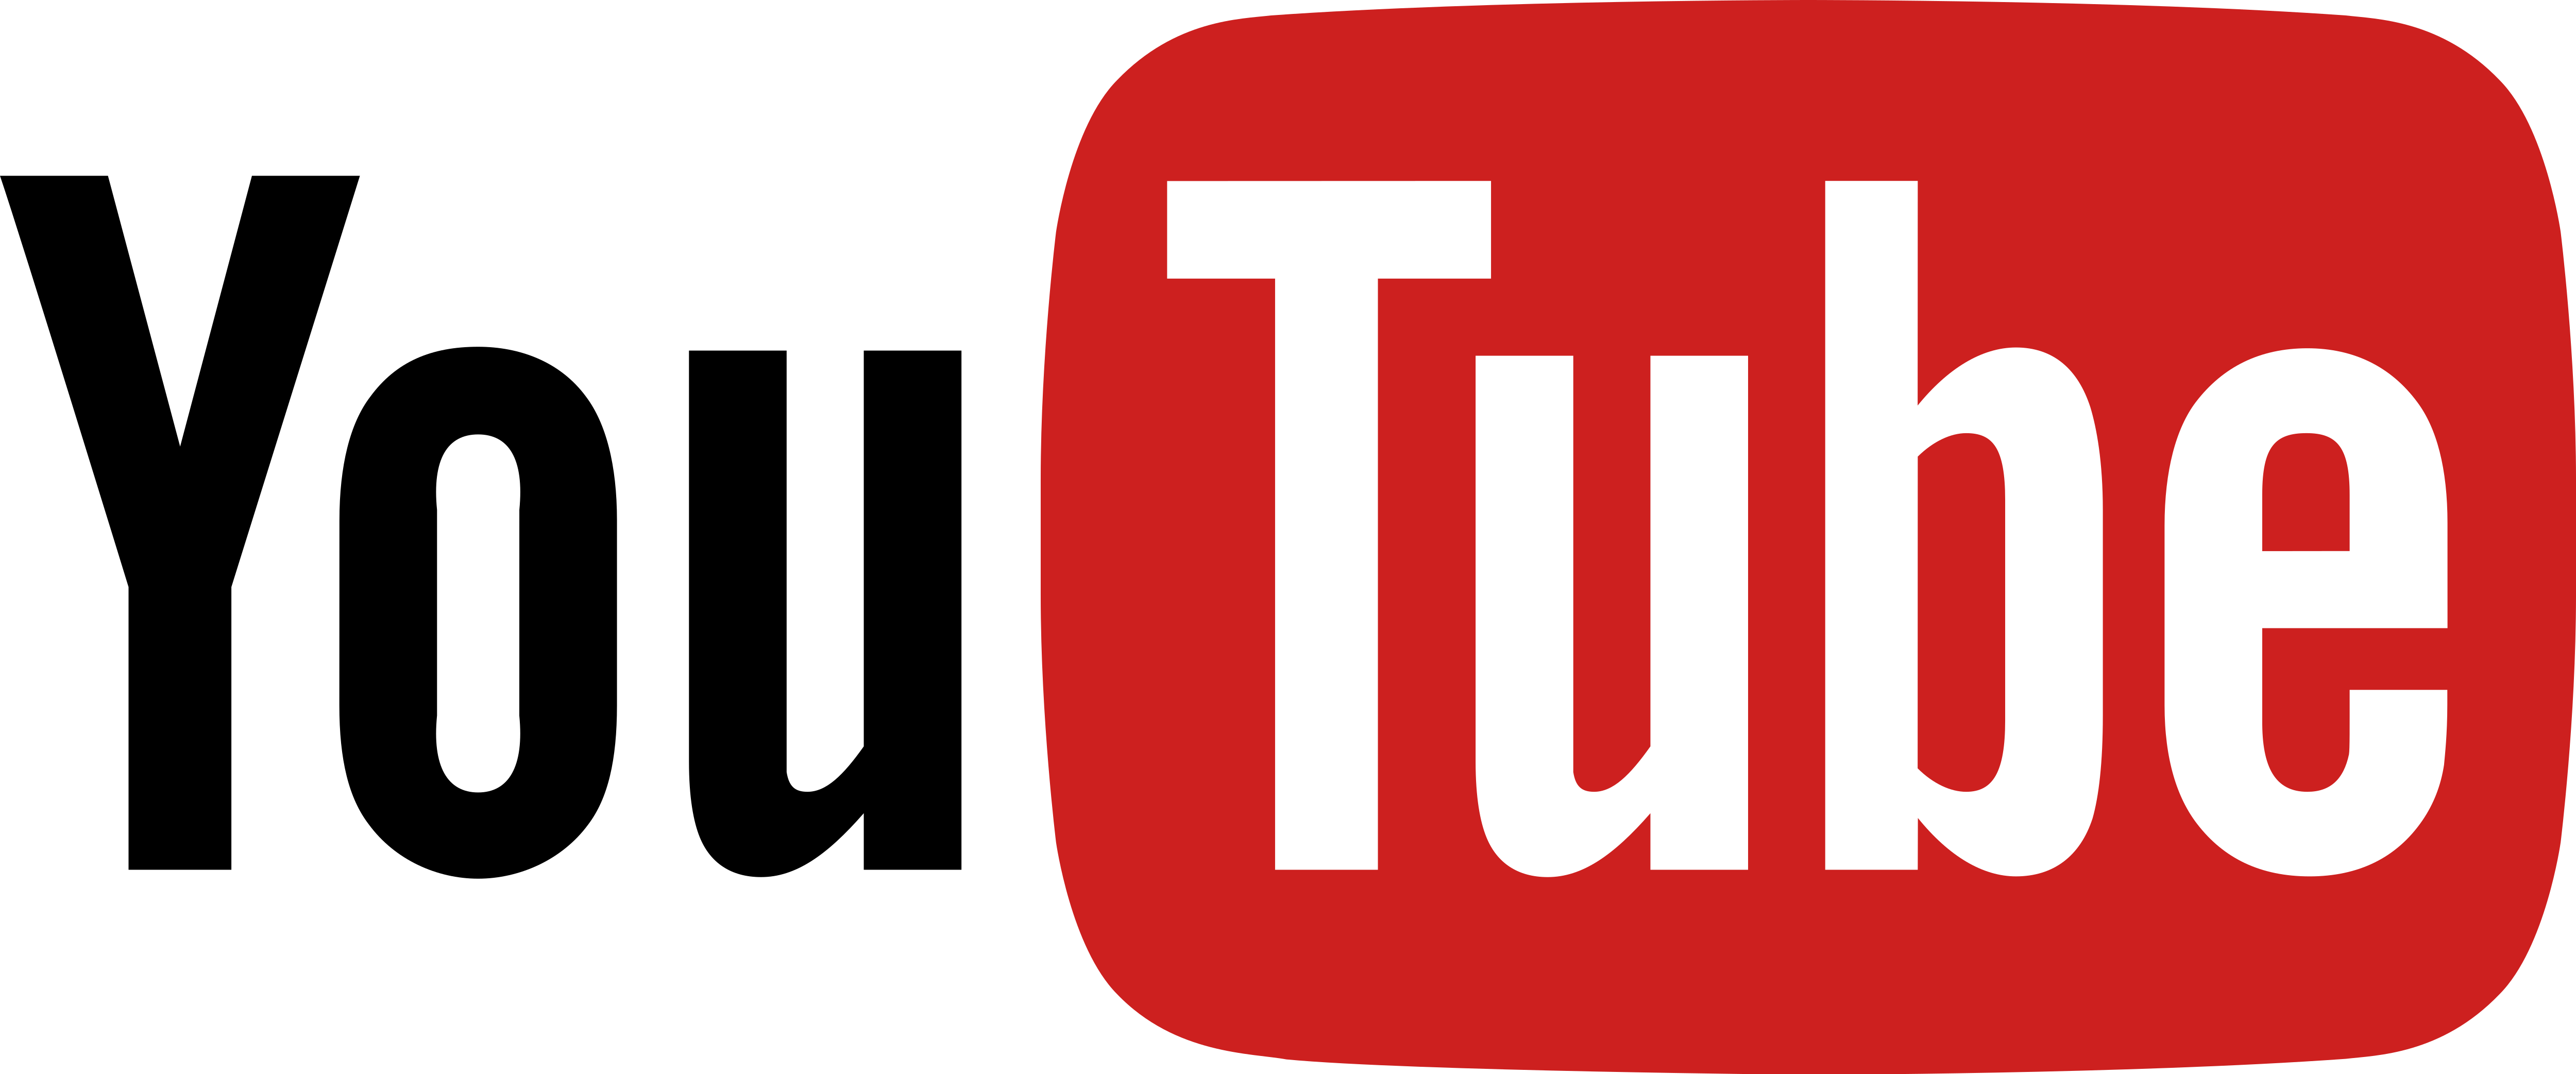 Youtube subscribe bell icon png. Per subscribers kaise badhaye